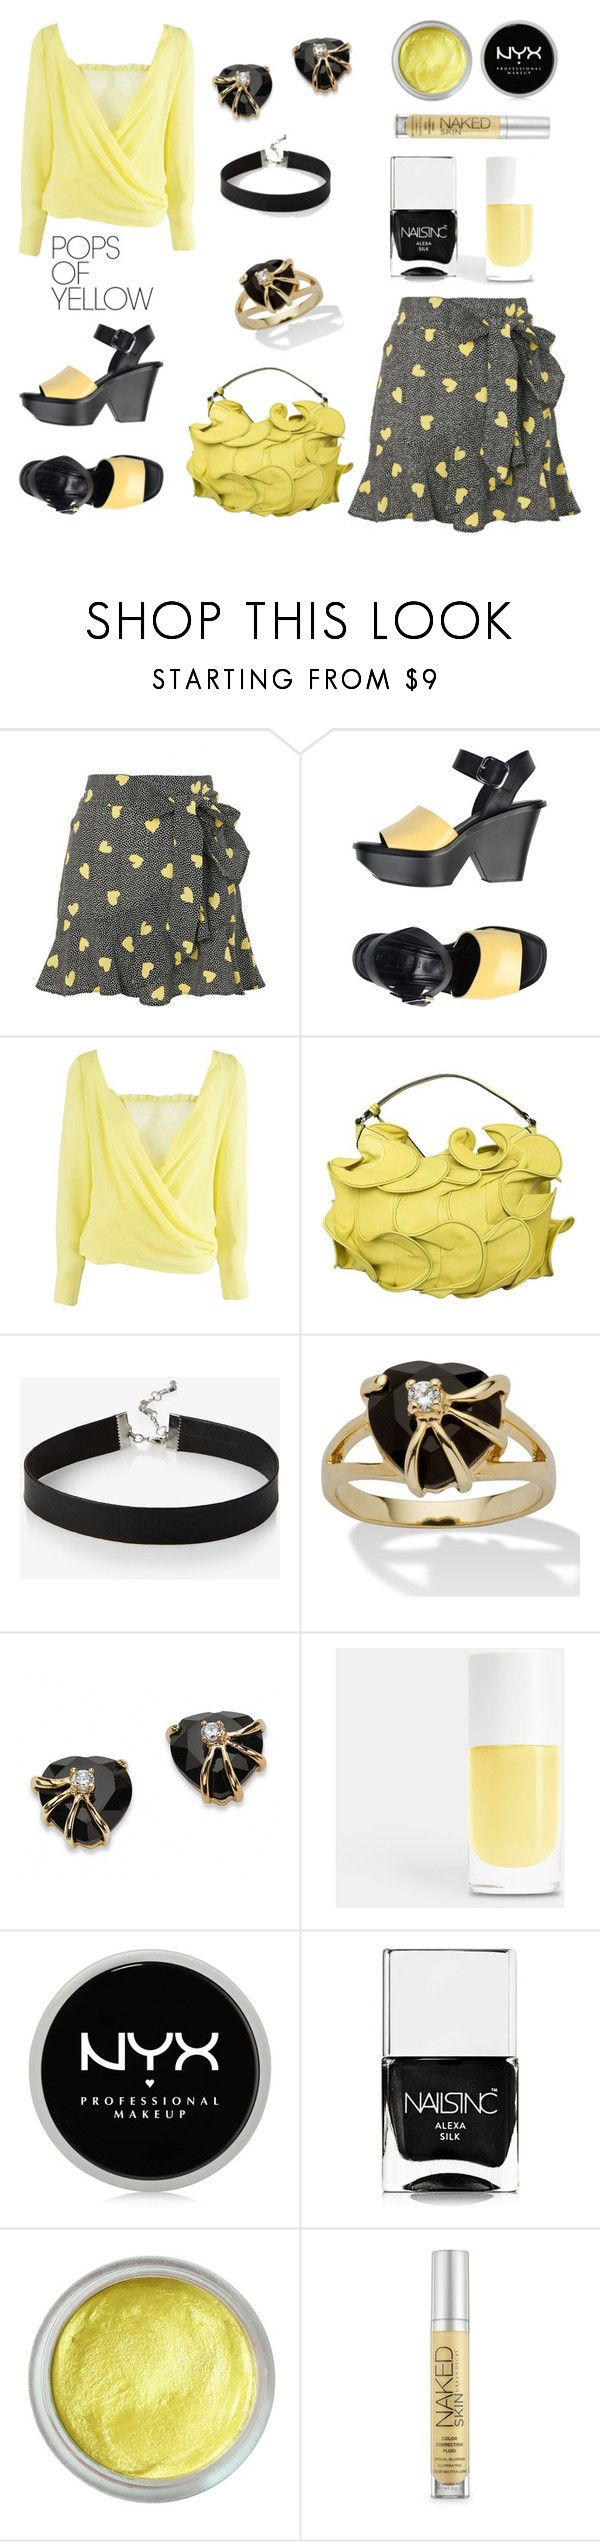 Untitled #972 by siriusfun on Polyvore featuring Versace, Topshop, Marni, Valentino, Palm Beach Jewelry, Express, Urban Decay, Forever 21, NYX and Nails Inc.